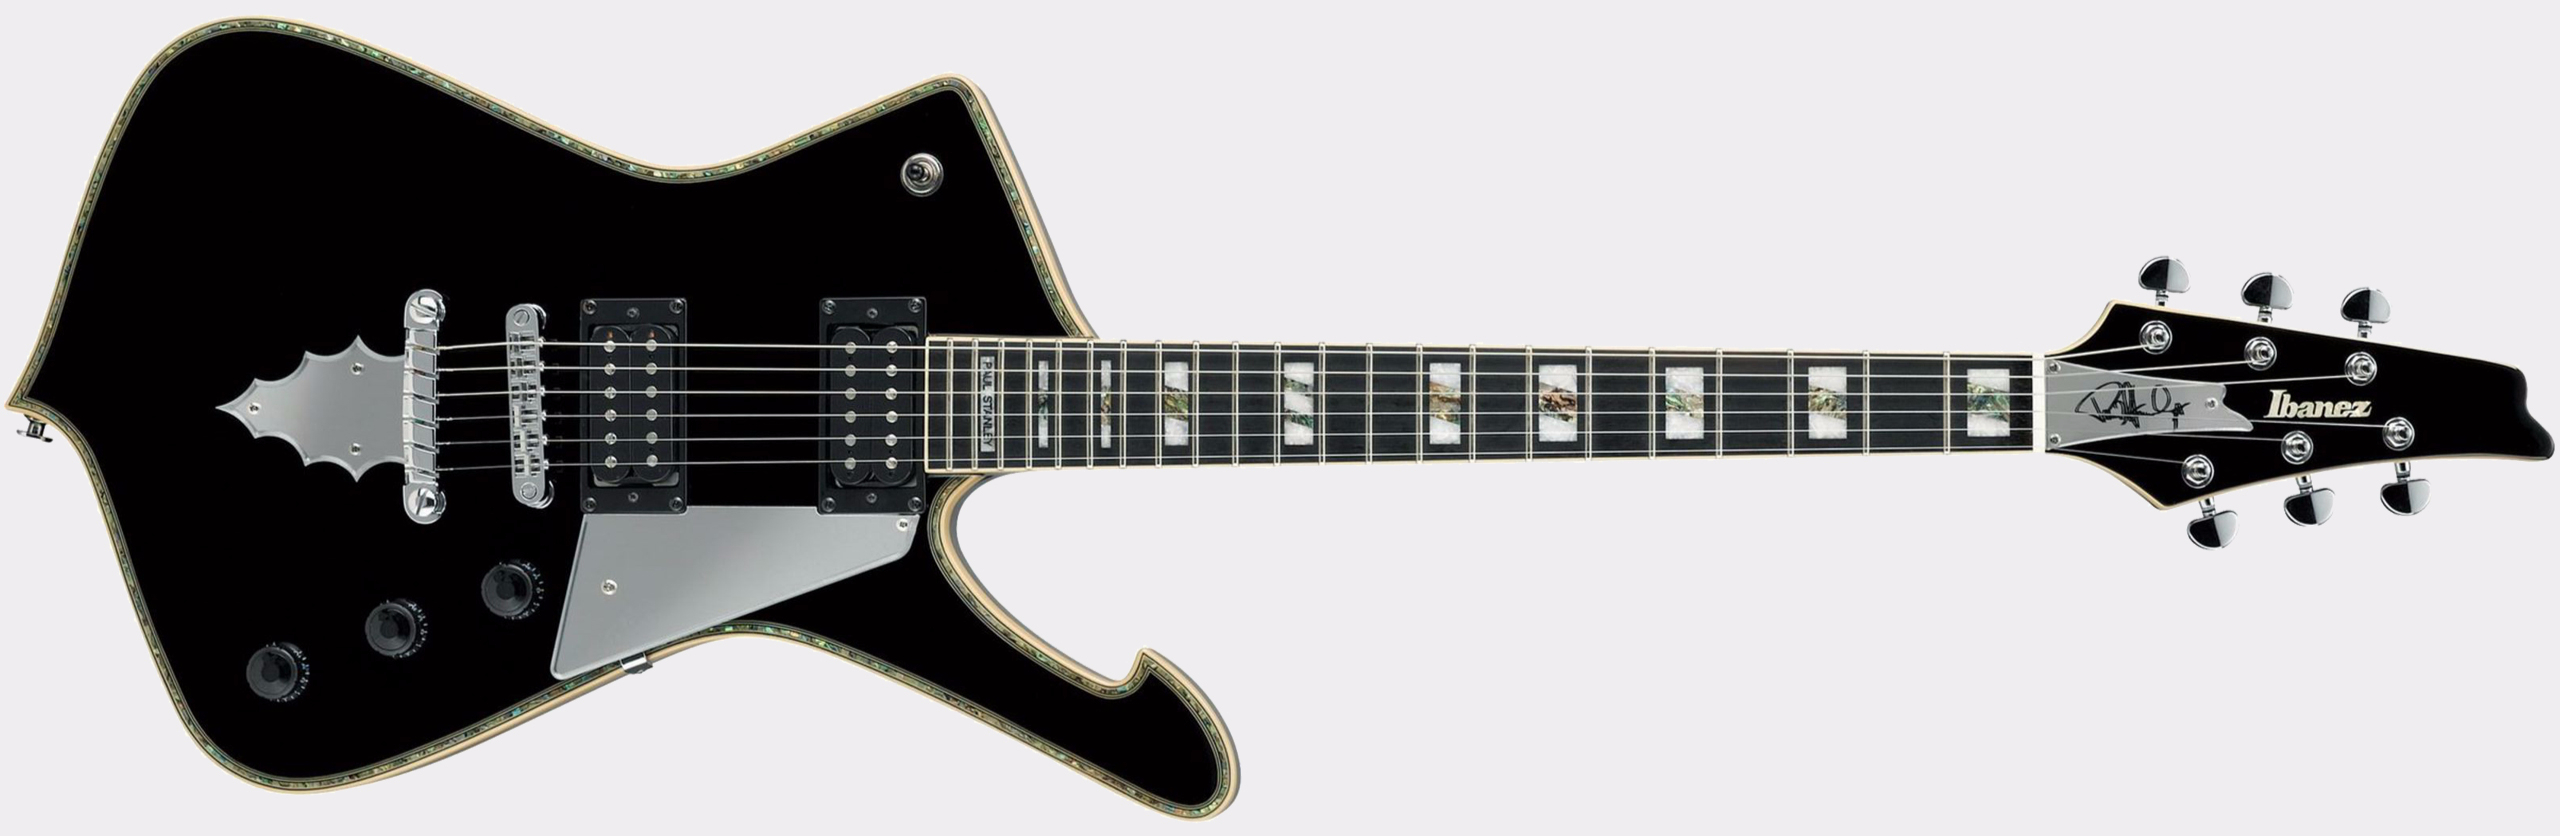 IBANEZ Paul Stanley PS120-BK BlackIBANEZ Paul Stanley PS120-BK Black